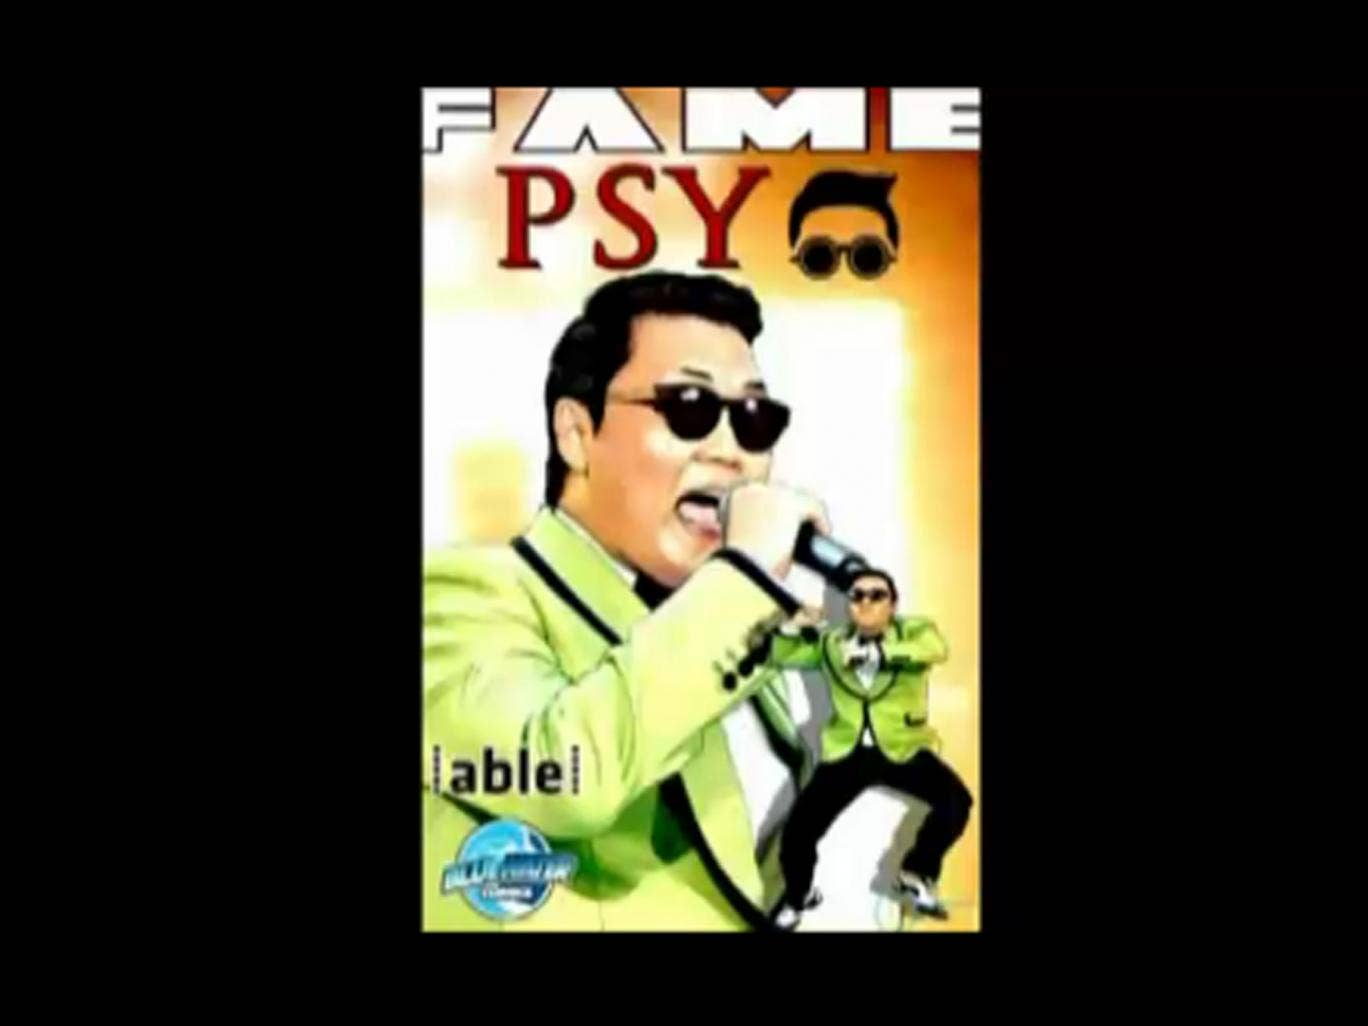 The front cover of 'Fame: Psy' which immortalises the South Korean pop star's life and rise to fame